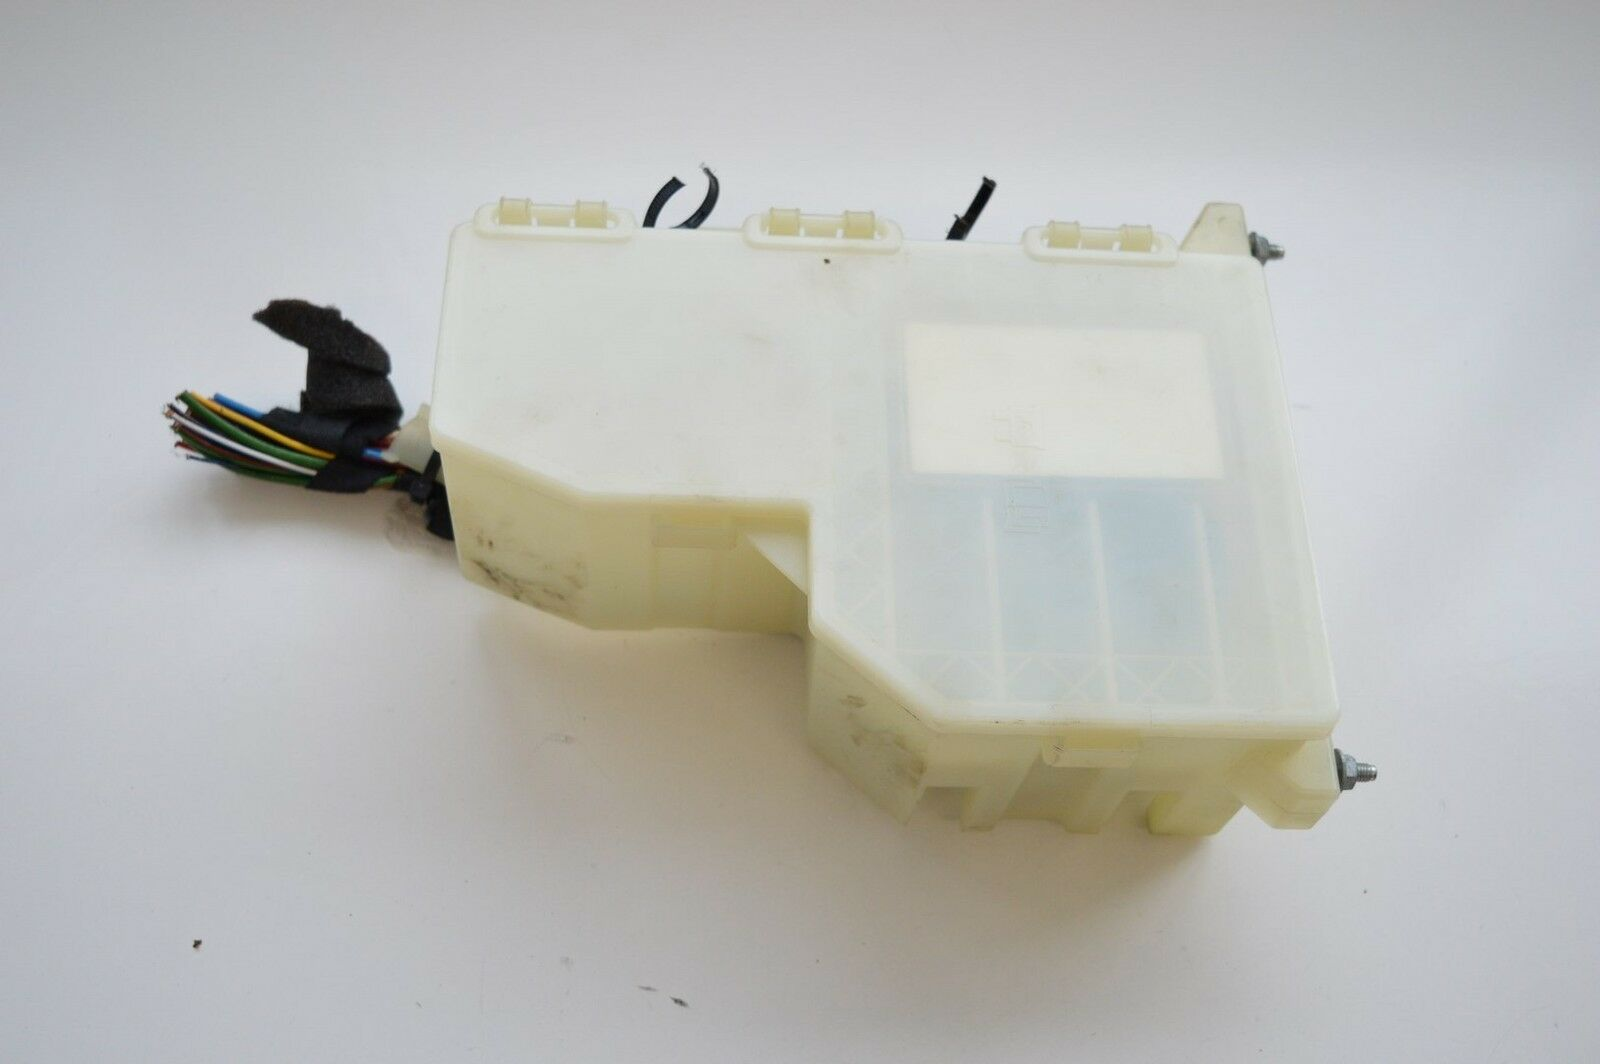 hight resolution of land rover freelander 2009 rhd fuse box with housing cover 6g9t14c507 1 of 4only 1 available